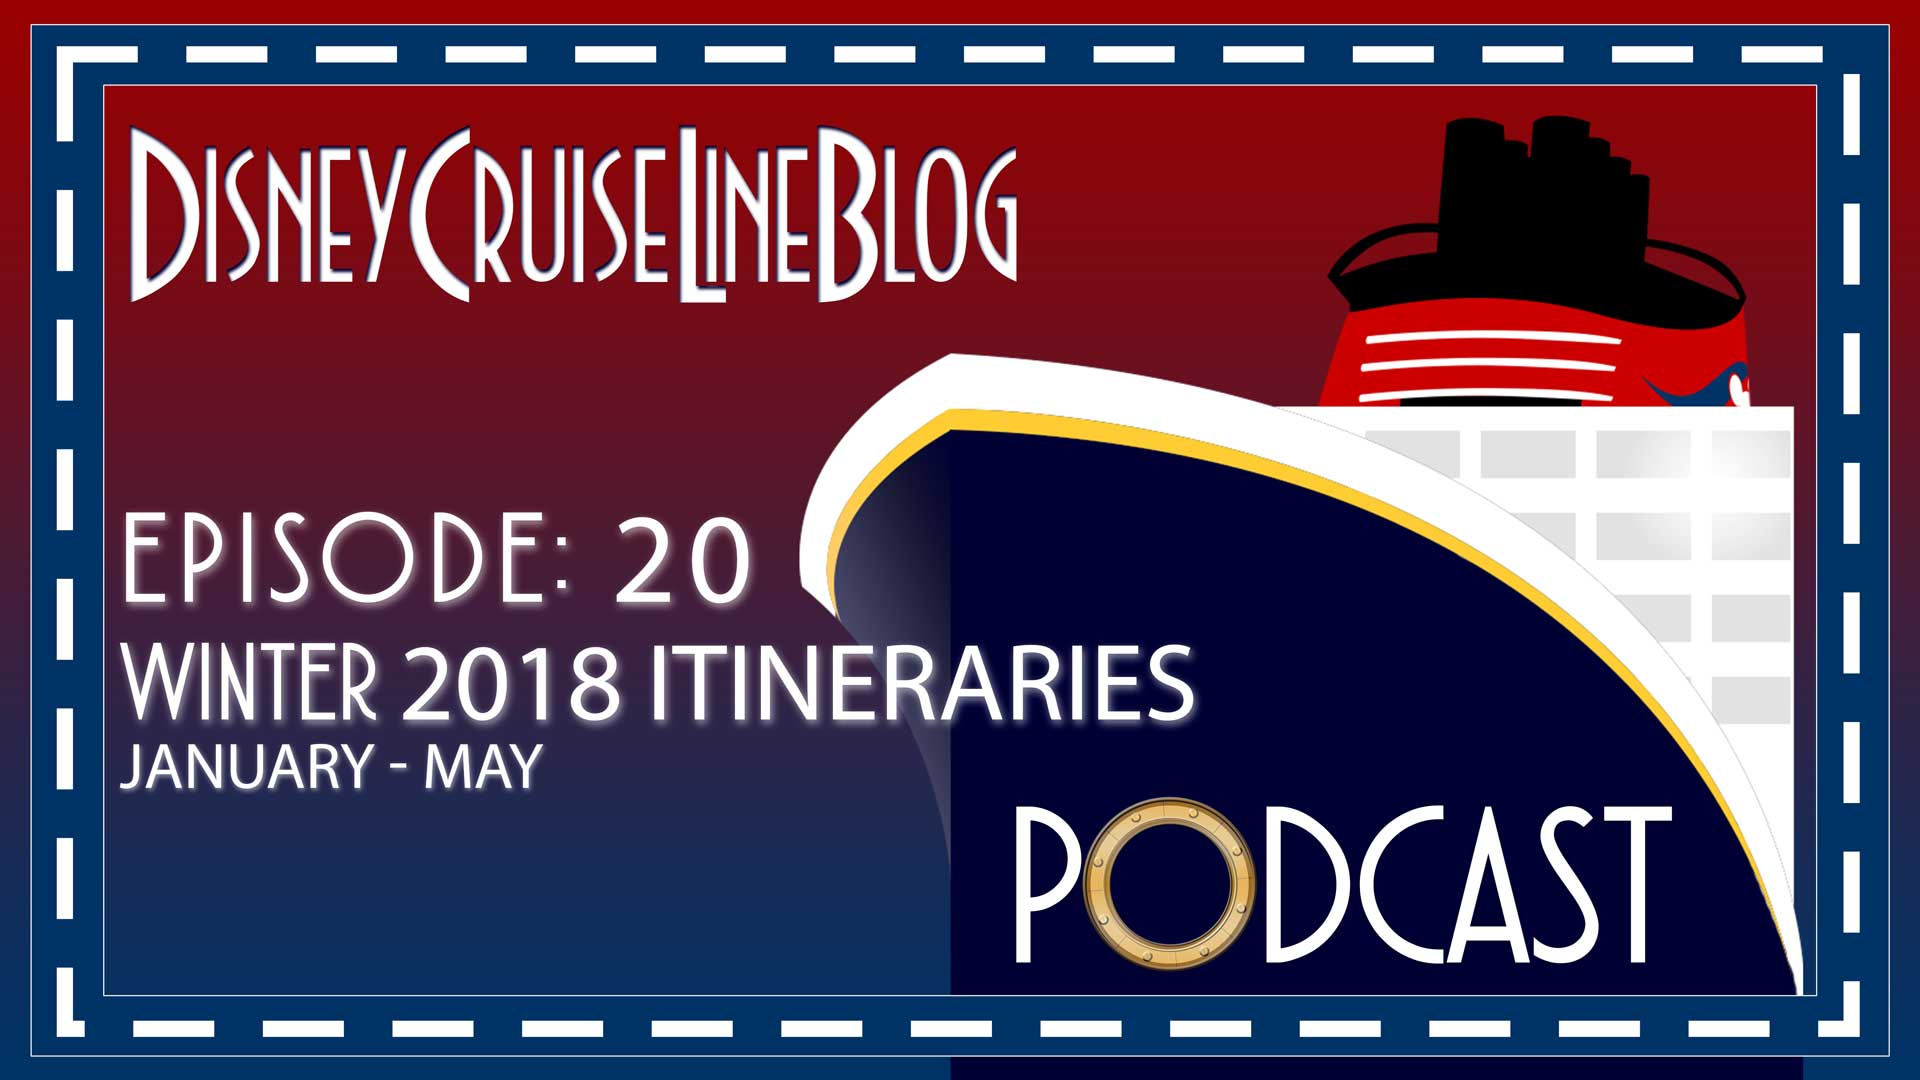 Dcl Blog Podcast Episode 20 Winter 2018 Itineraries